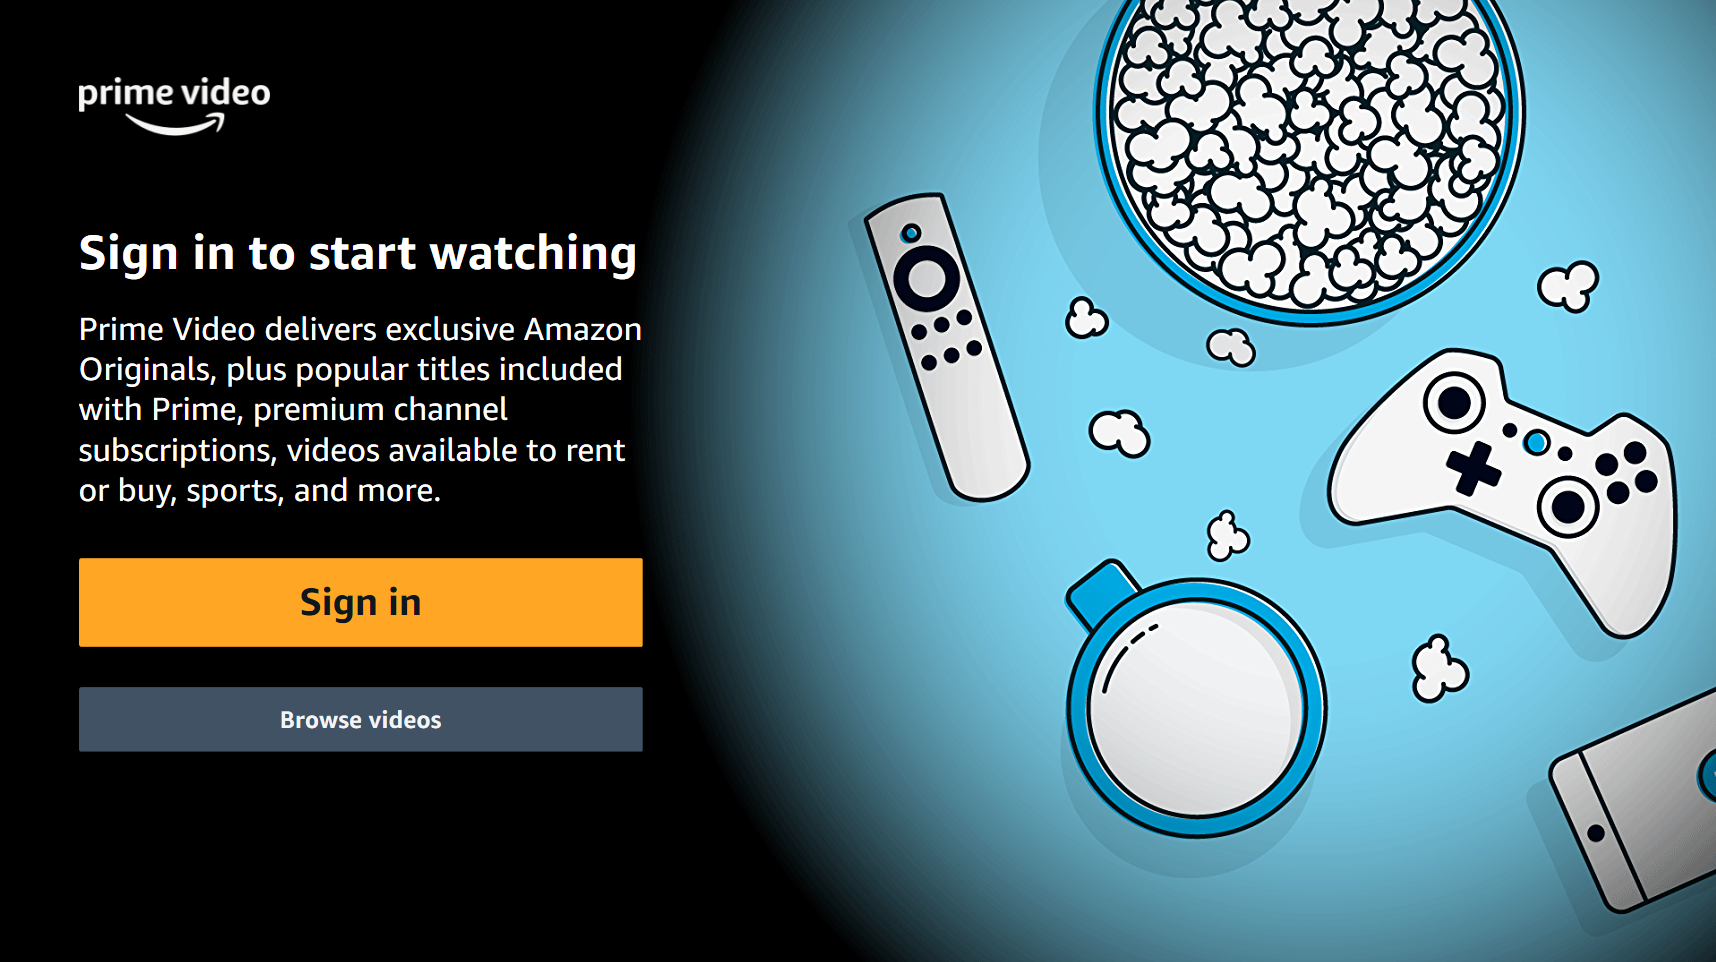 Add Amazon Prime Video to your SKY box